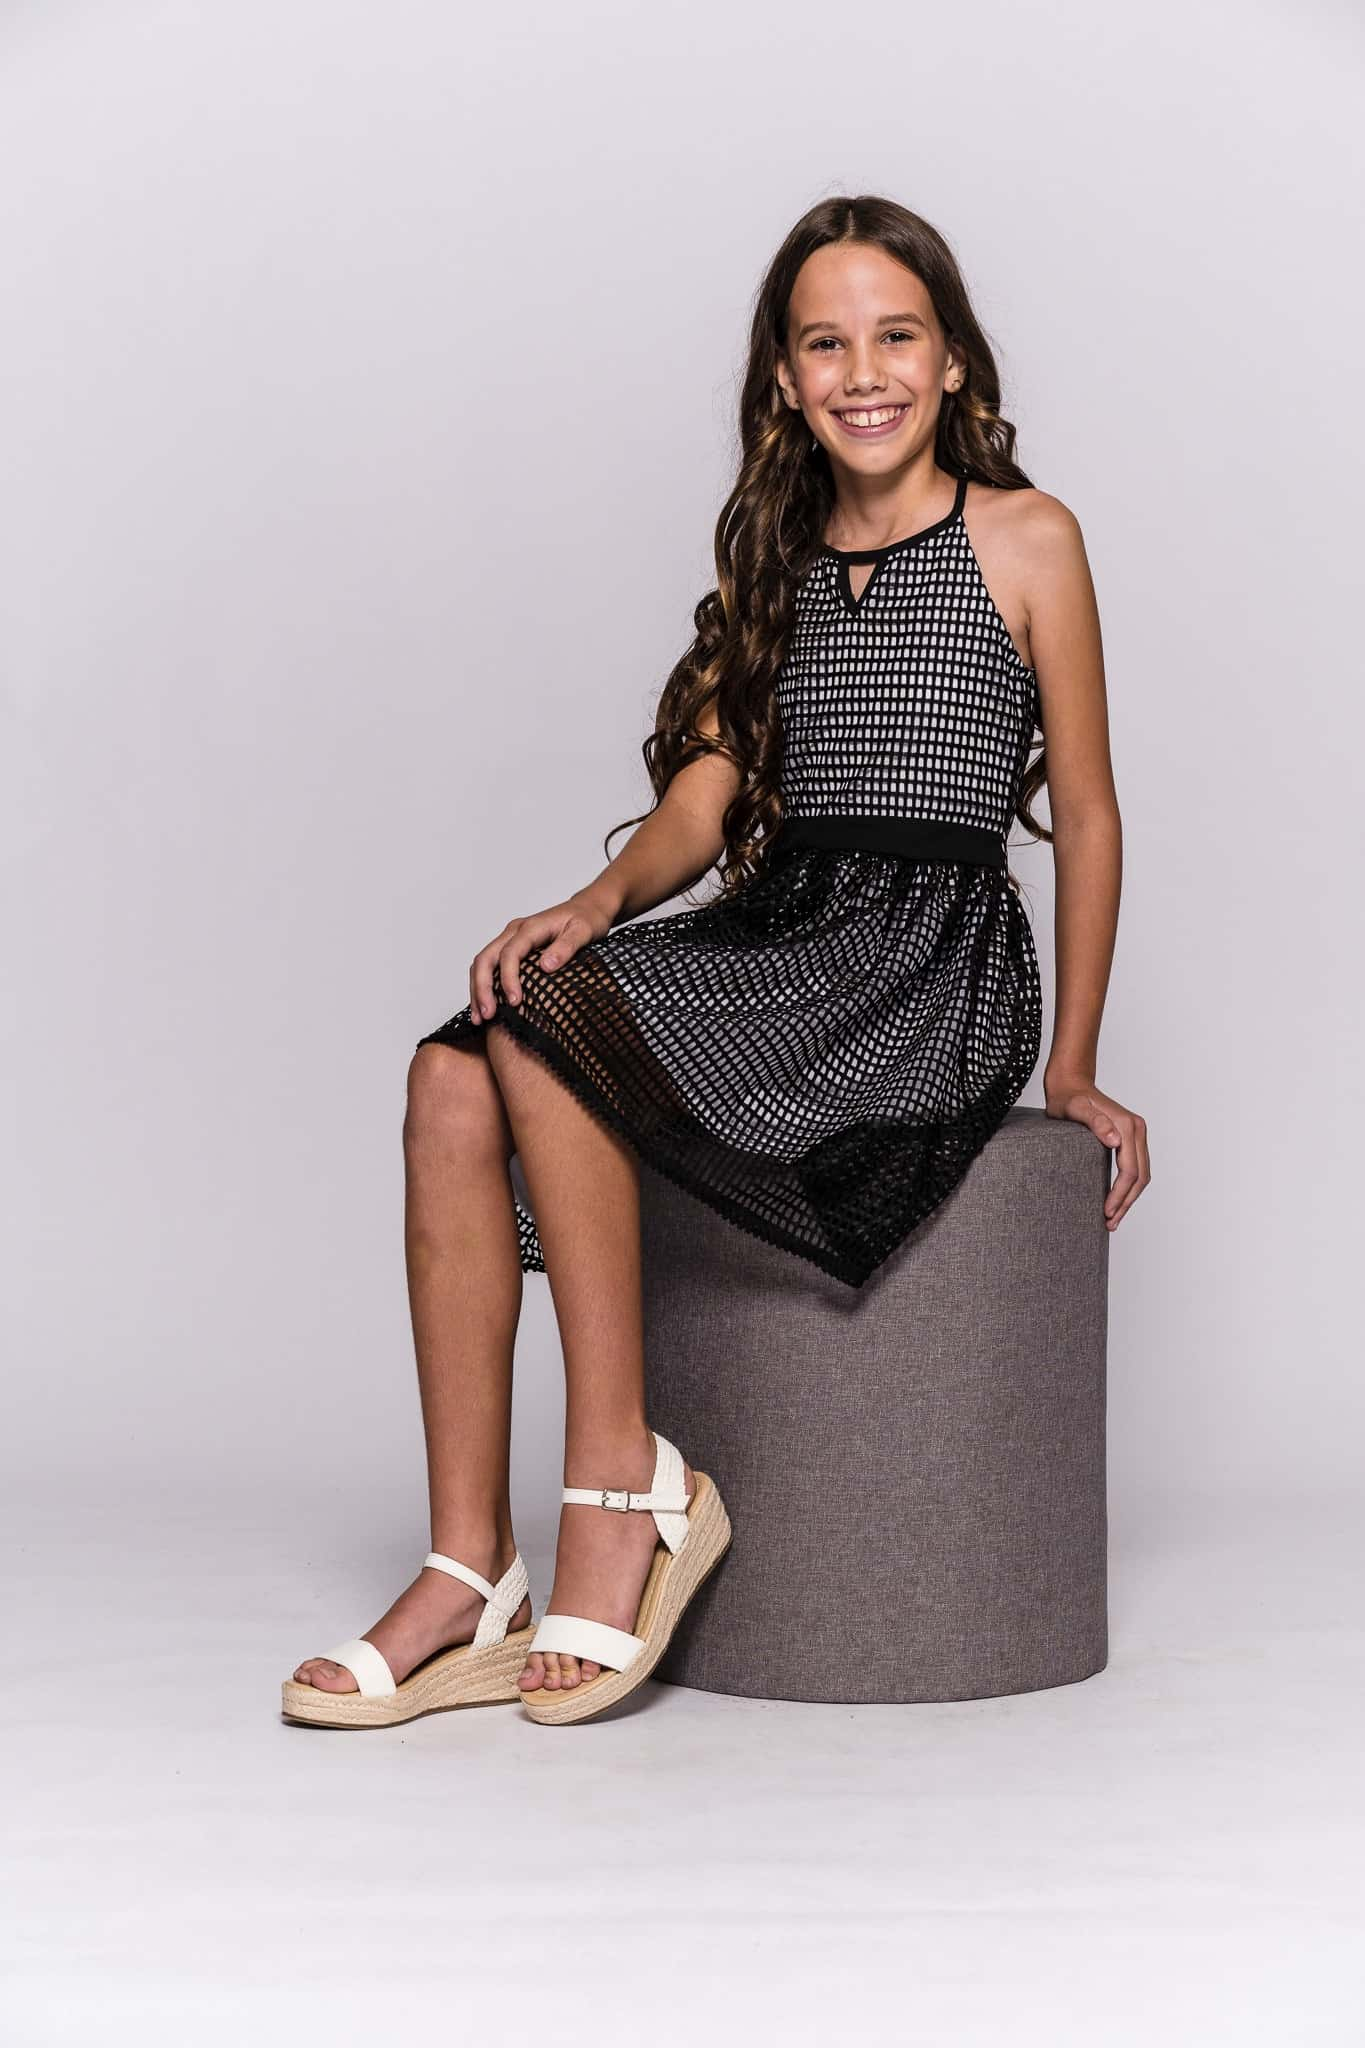 young model on stool